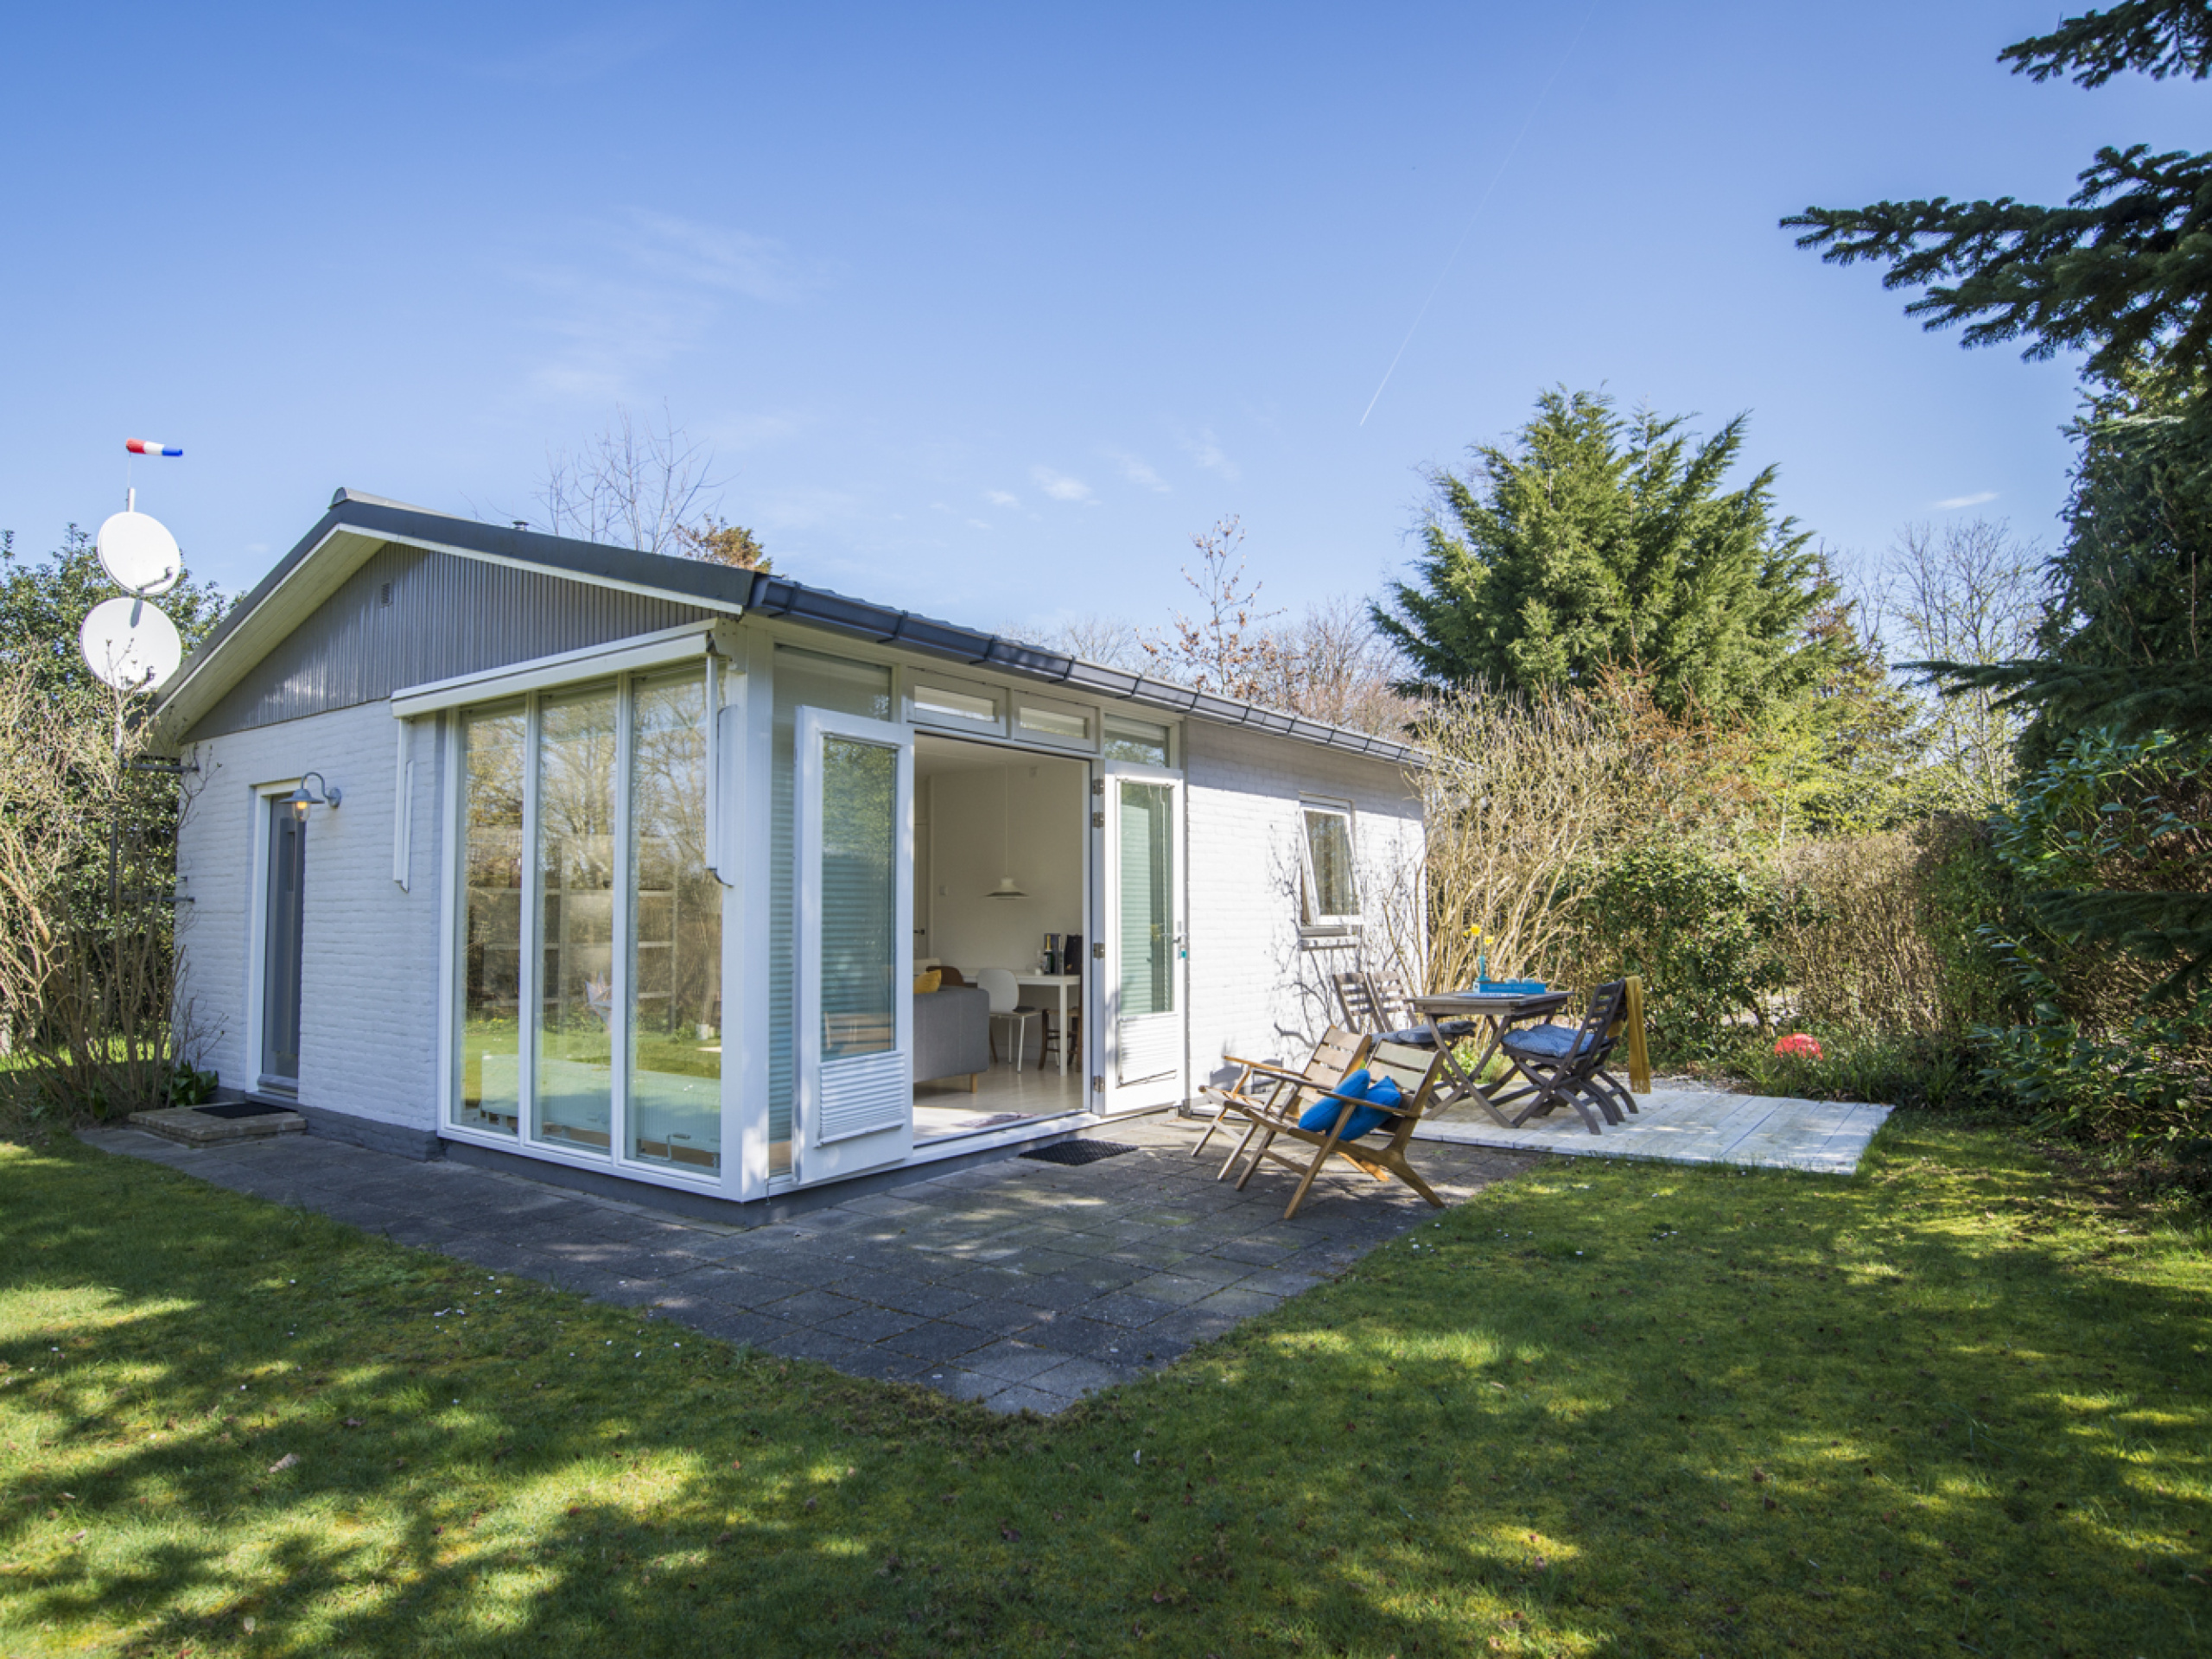 Detached bungalow on a small family park near Oosterend